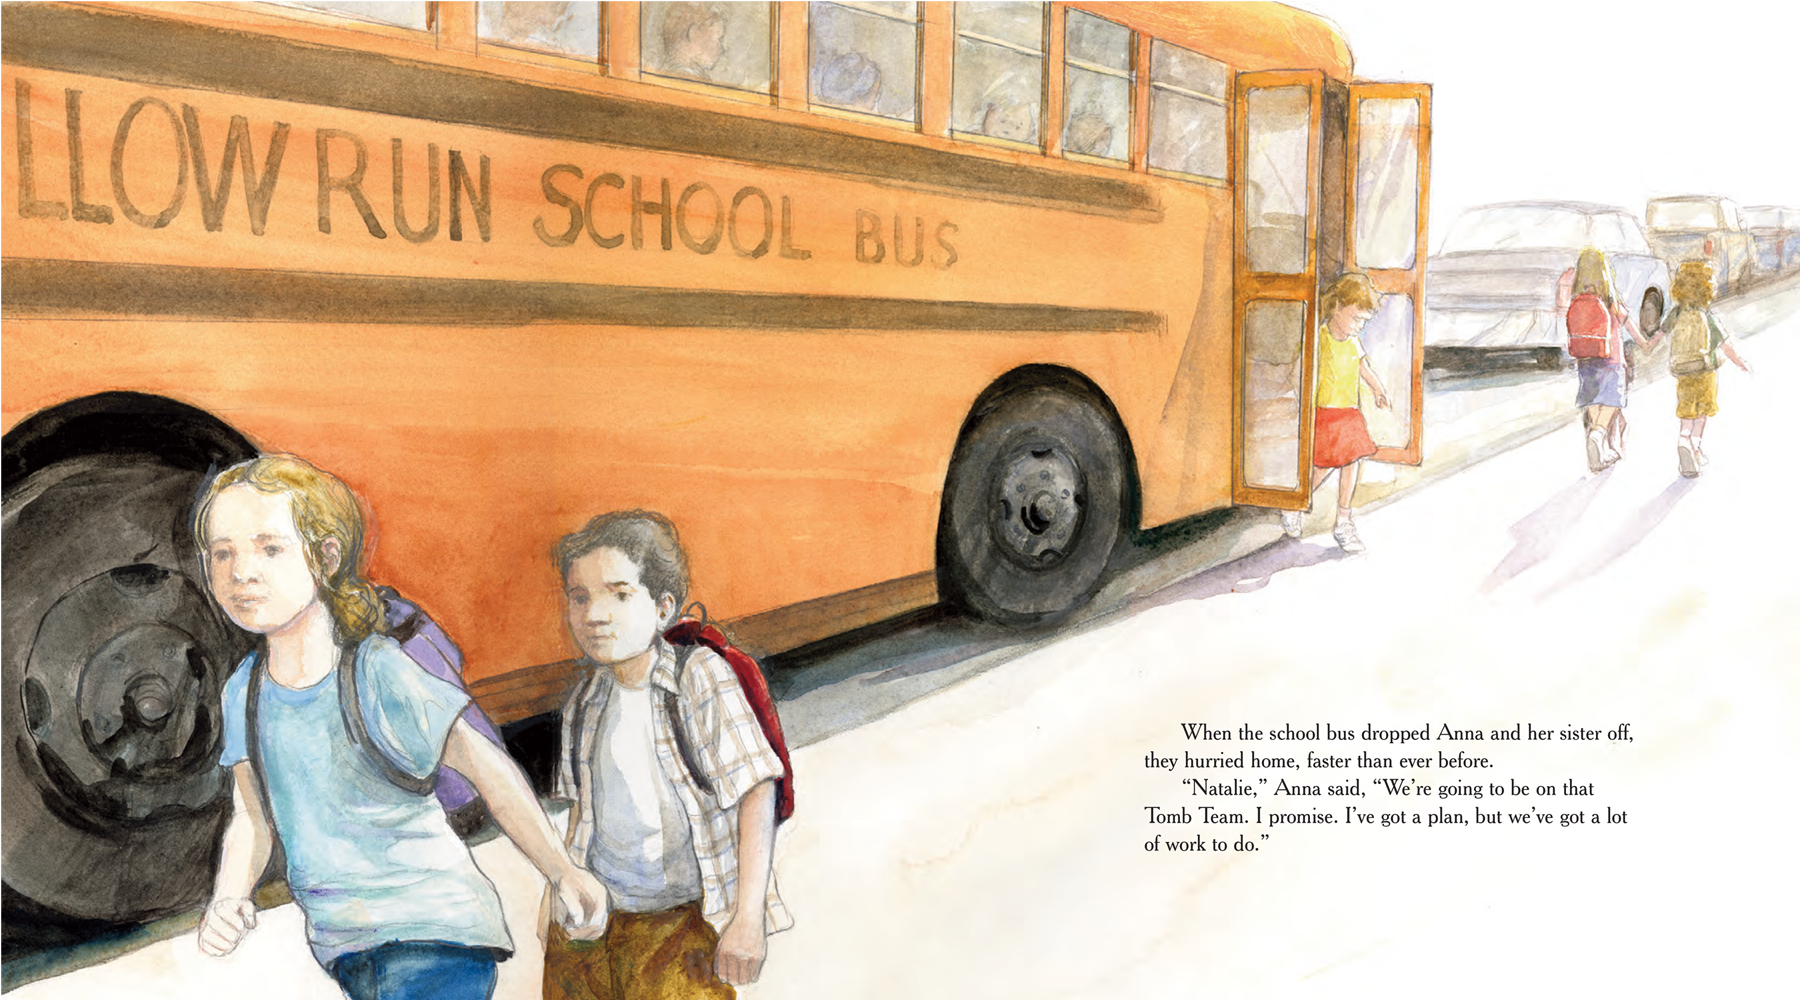 celebrate-picture-books-picture-book-review-anna-and-natalie-school-bus